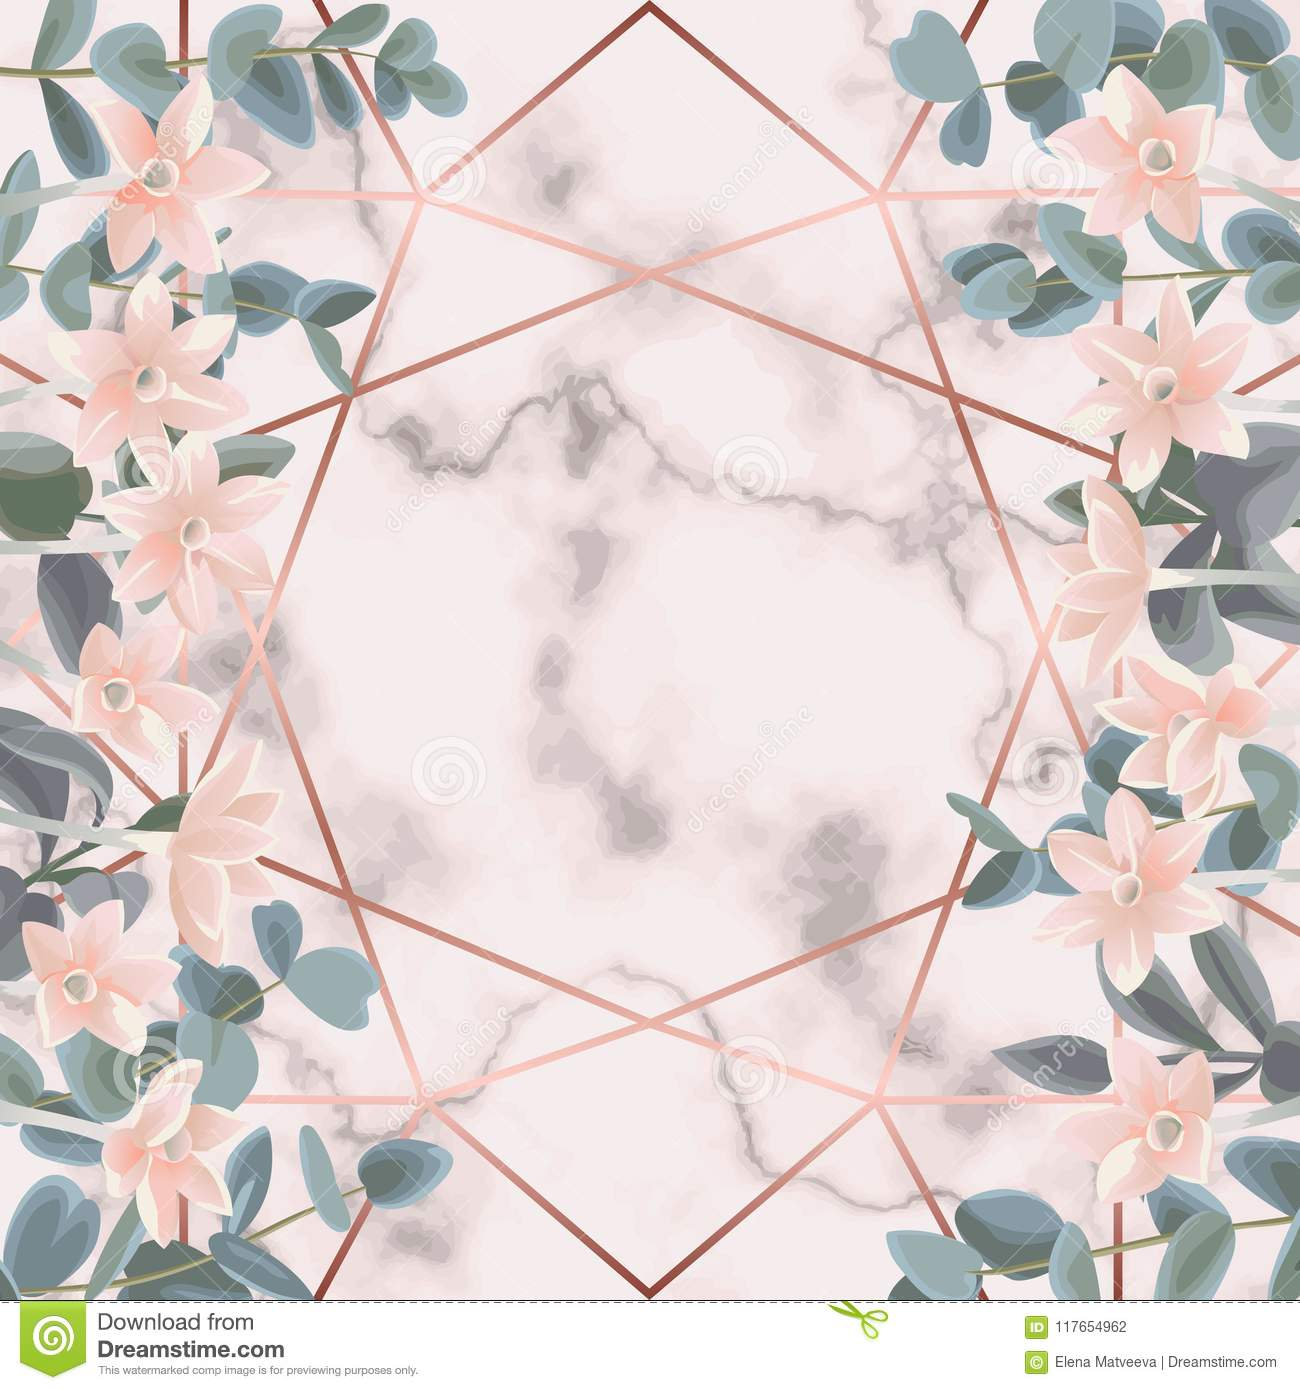 Pink Marble And Geometric Background With Eucalyptus And Flowers Stock Vector Illustration Of Line Blank 117654962